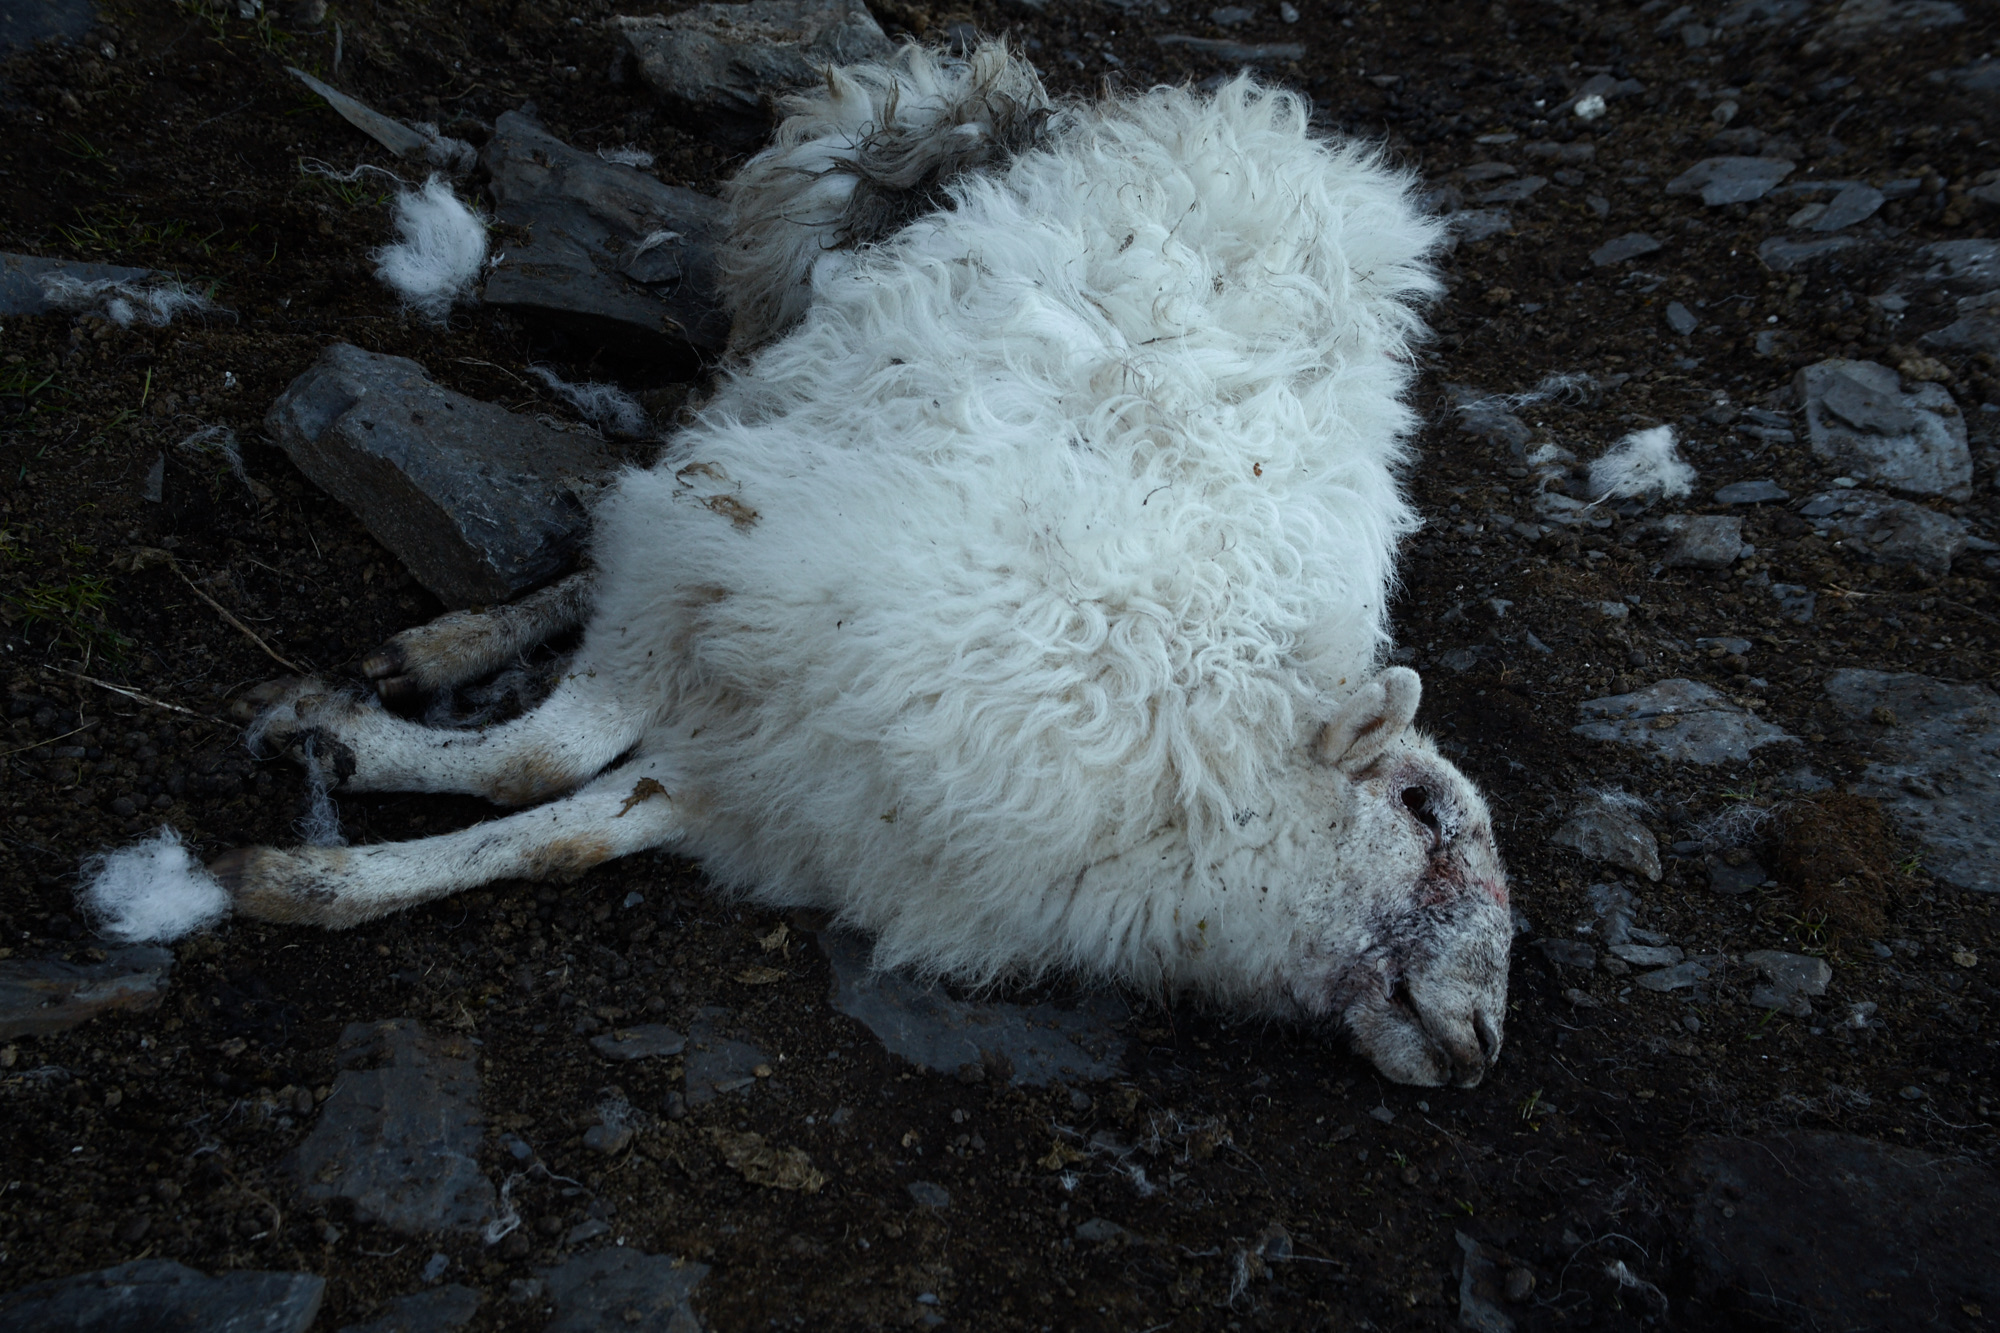 Dead sheep at Rhos Quarry, Capel Curig, Snowdonia, Wales